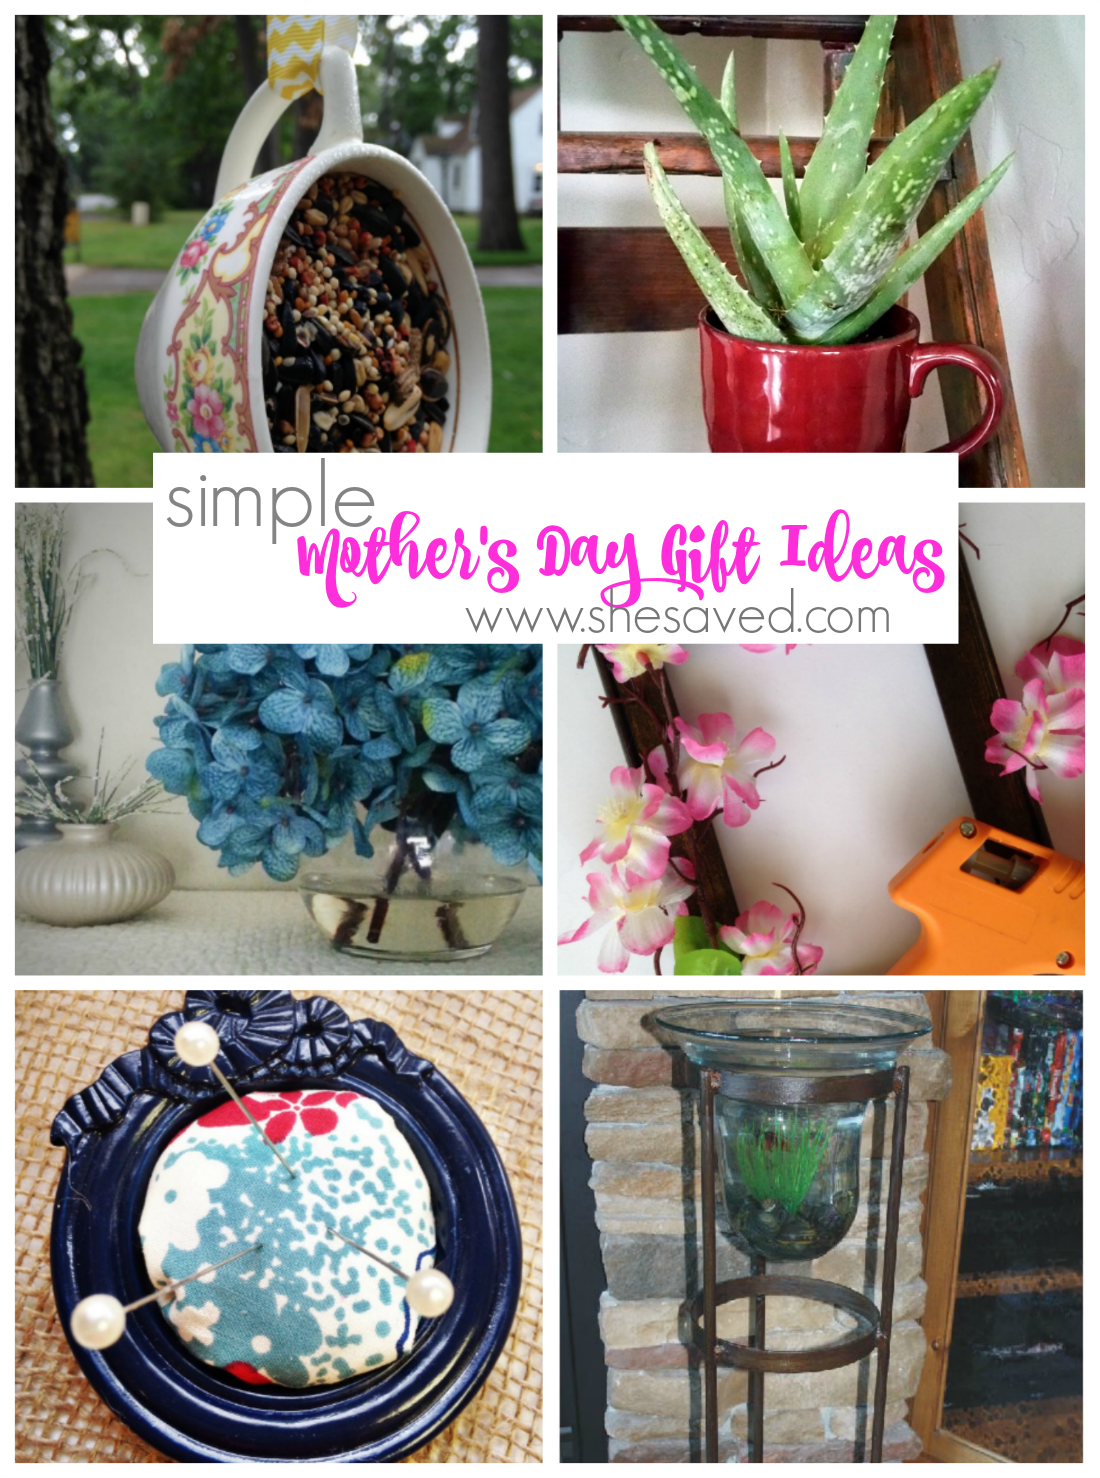 Simple Mothers Day Gift Ideas - SheSaved®